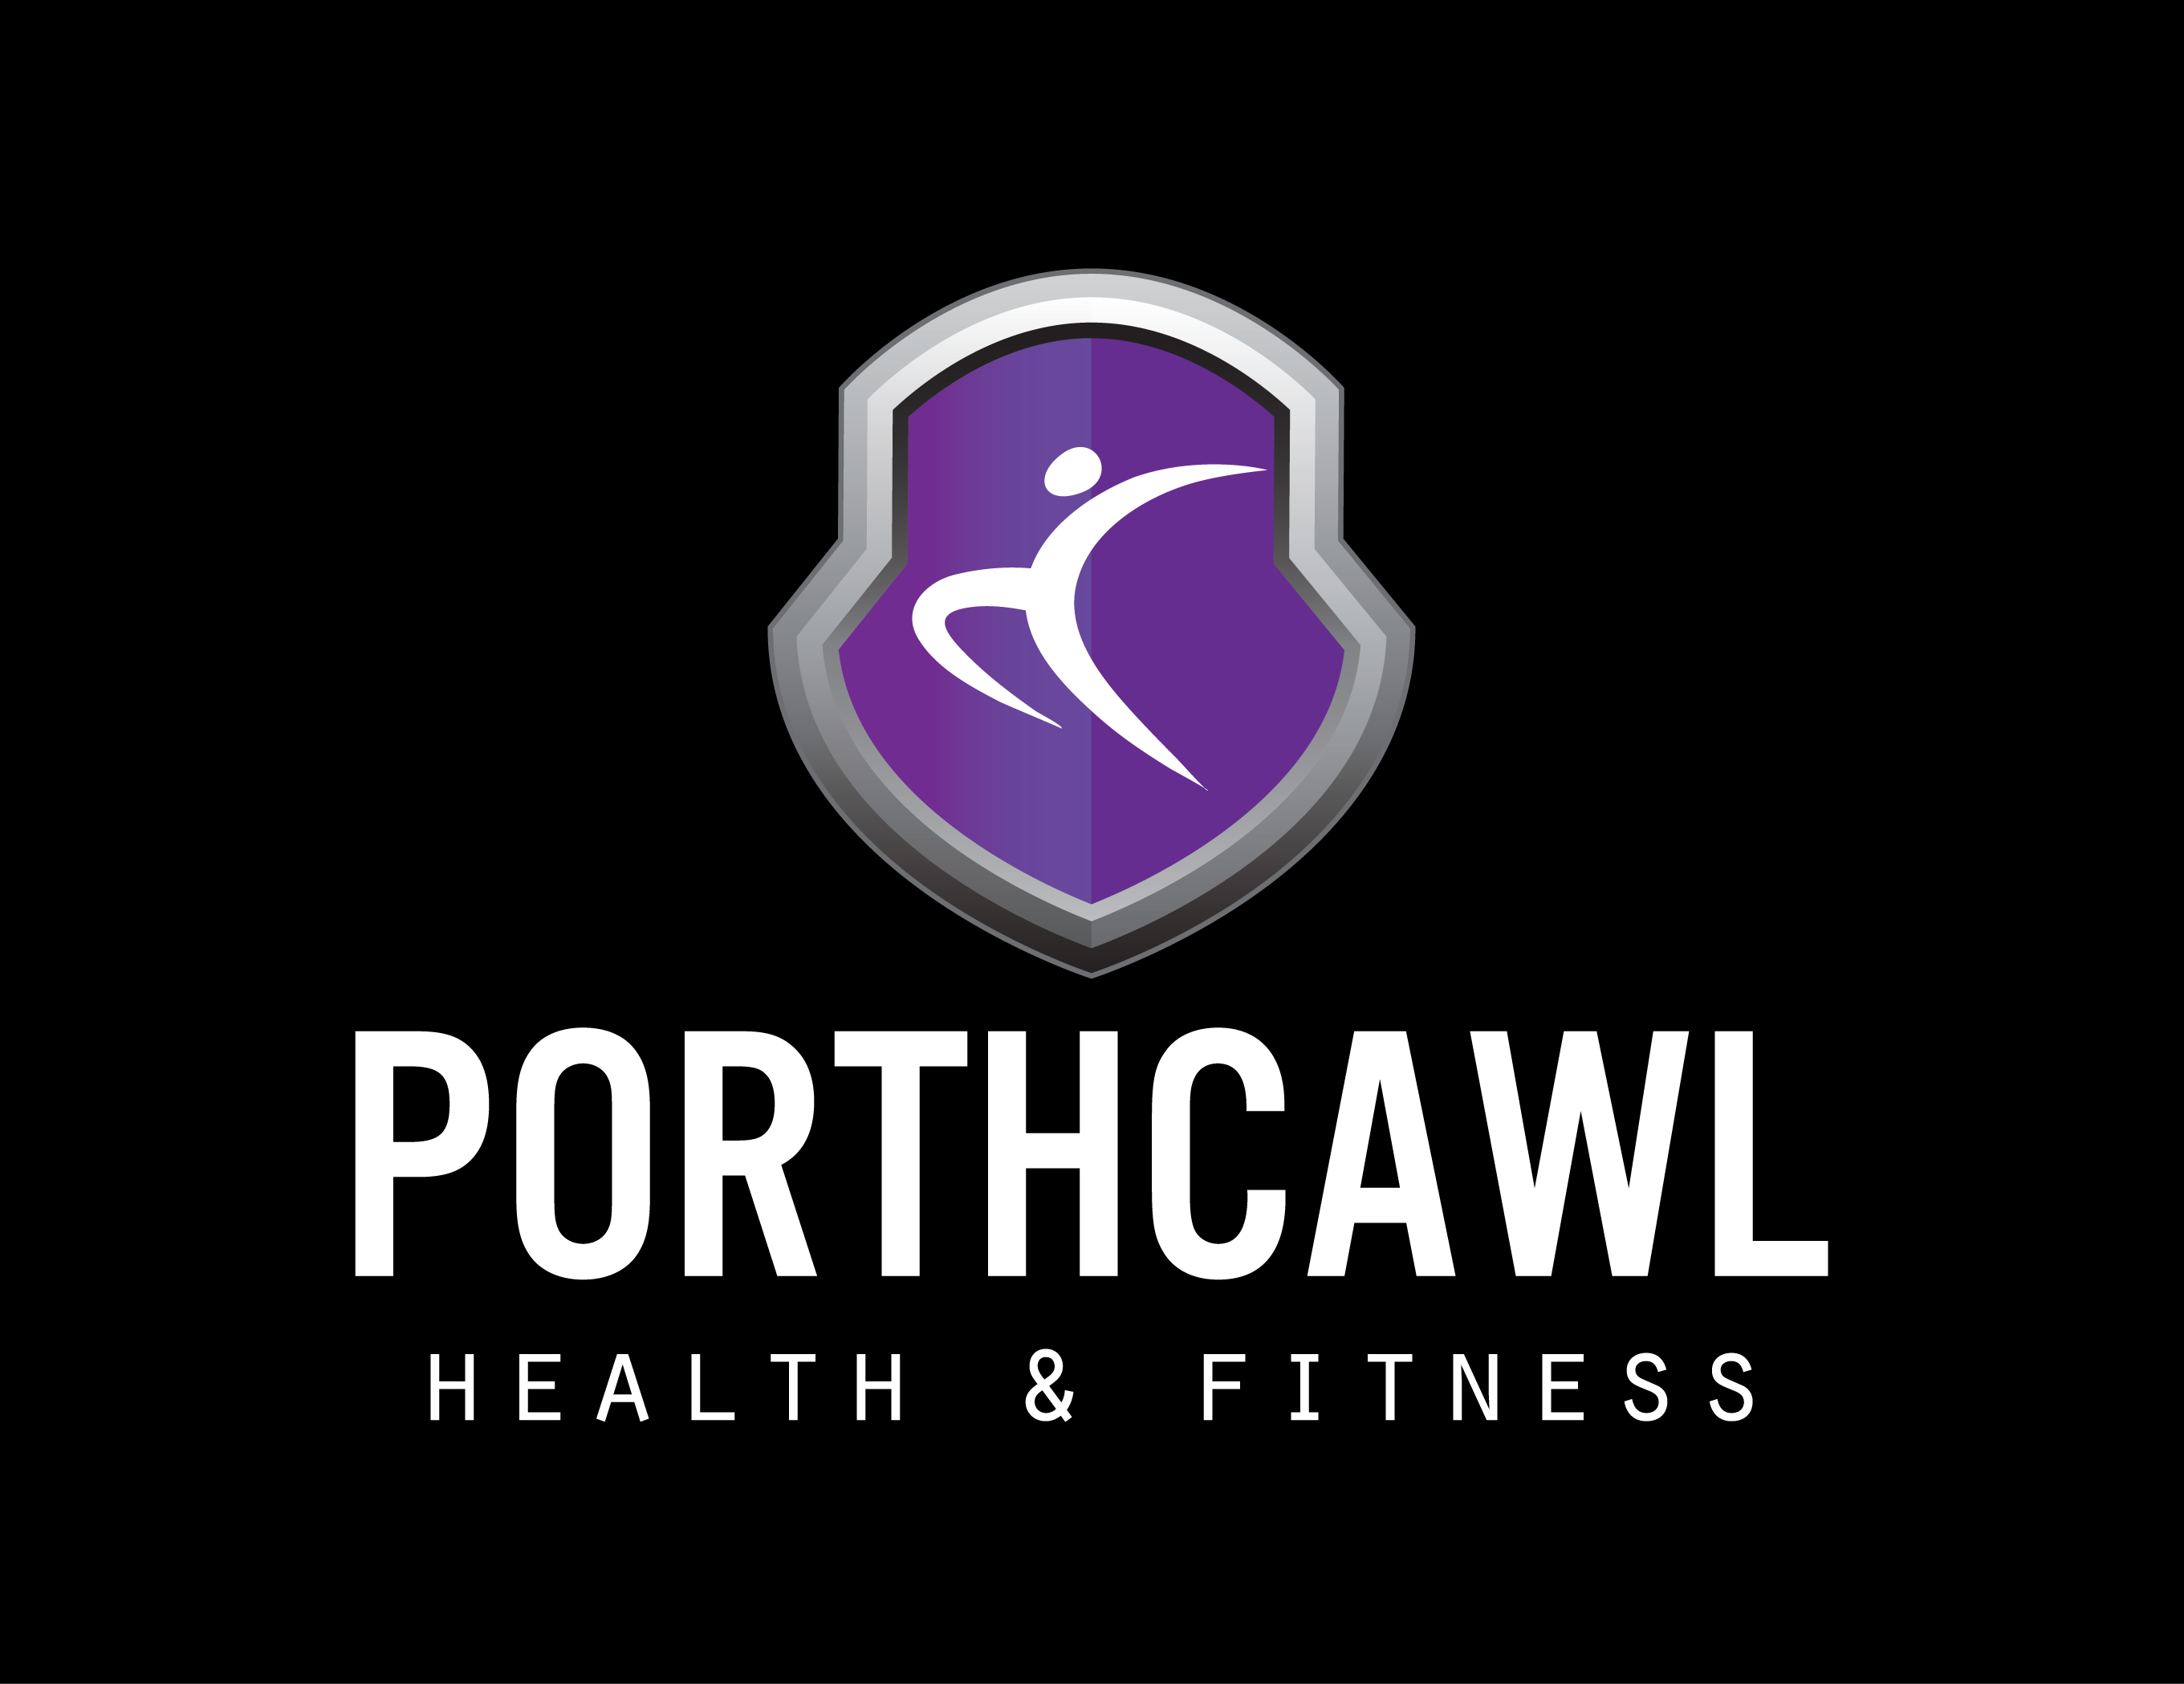 Porthcawl-Health-and-Fitness-logo